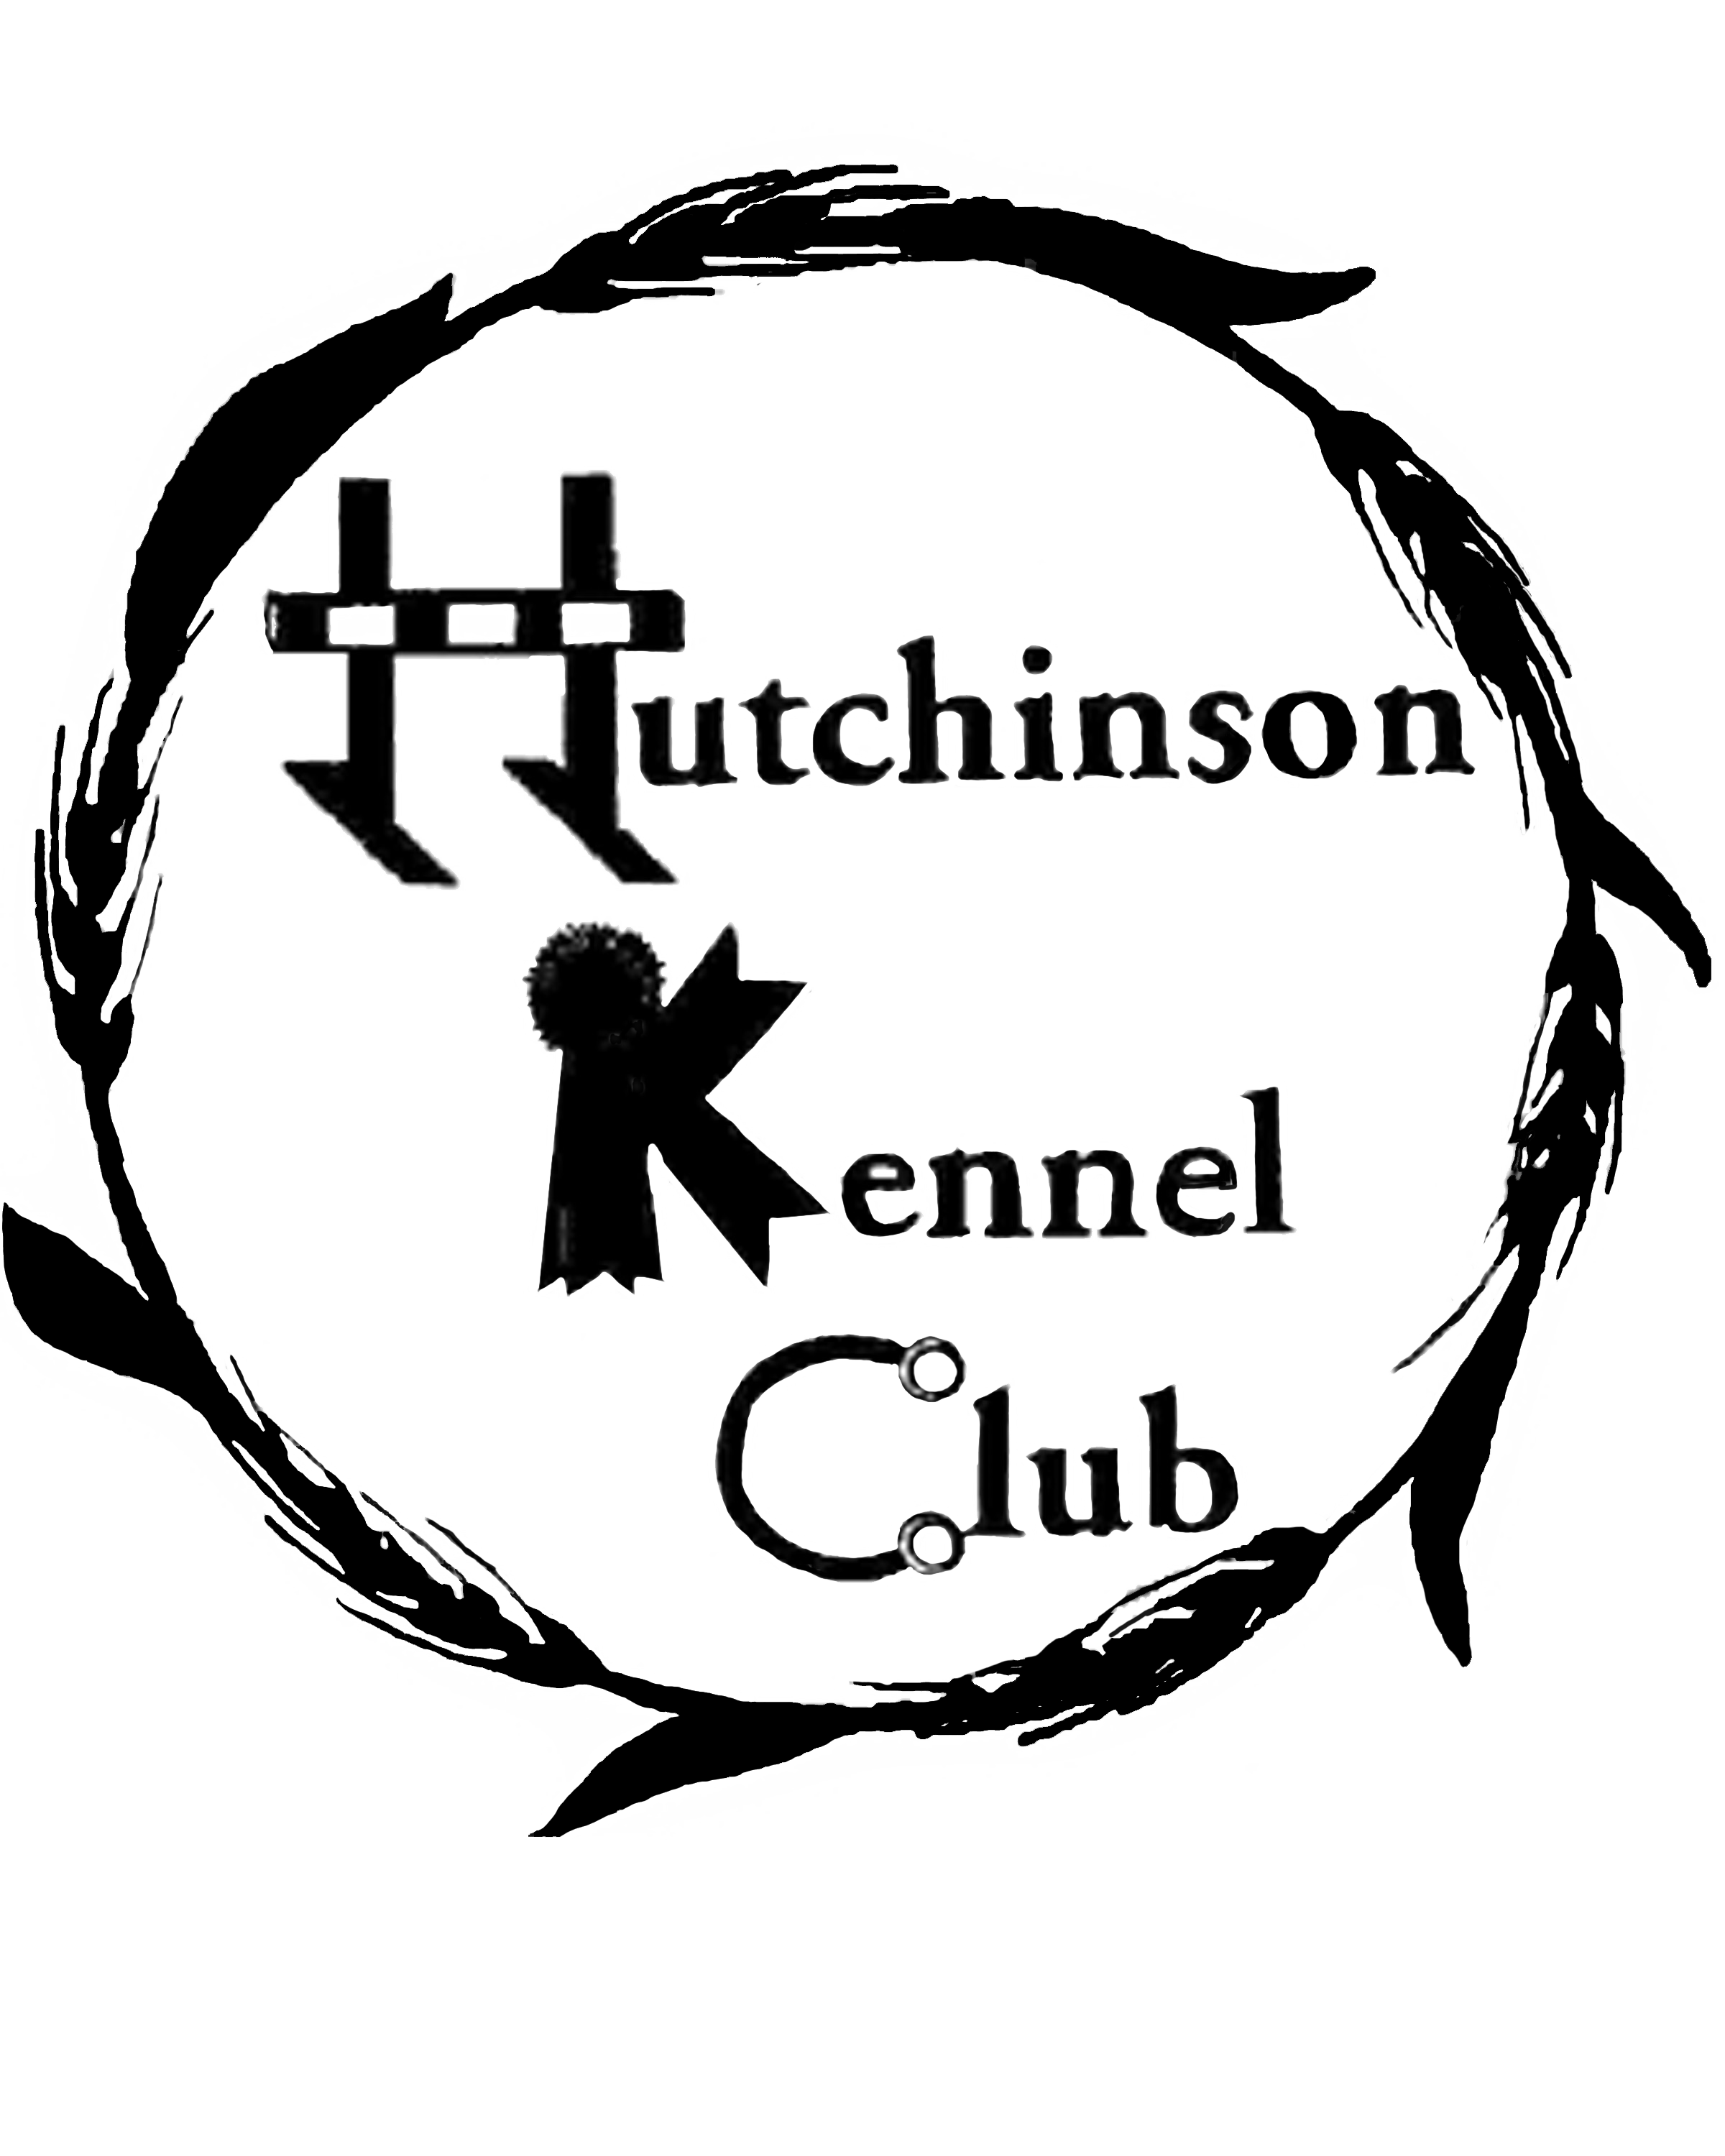 2400x3000 Hutchinson Kennel Club,c. All Breed Kennel Club Located